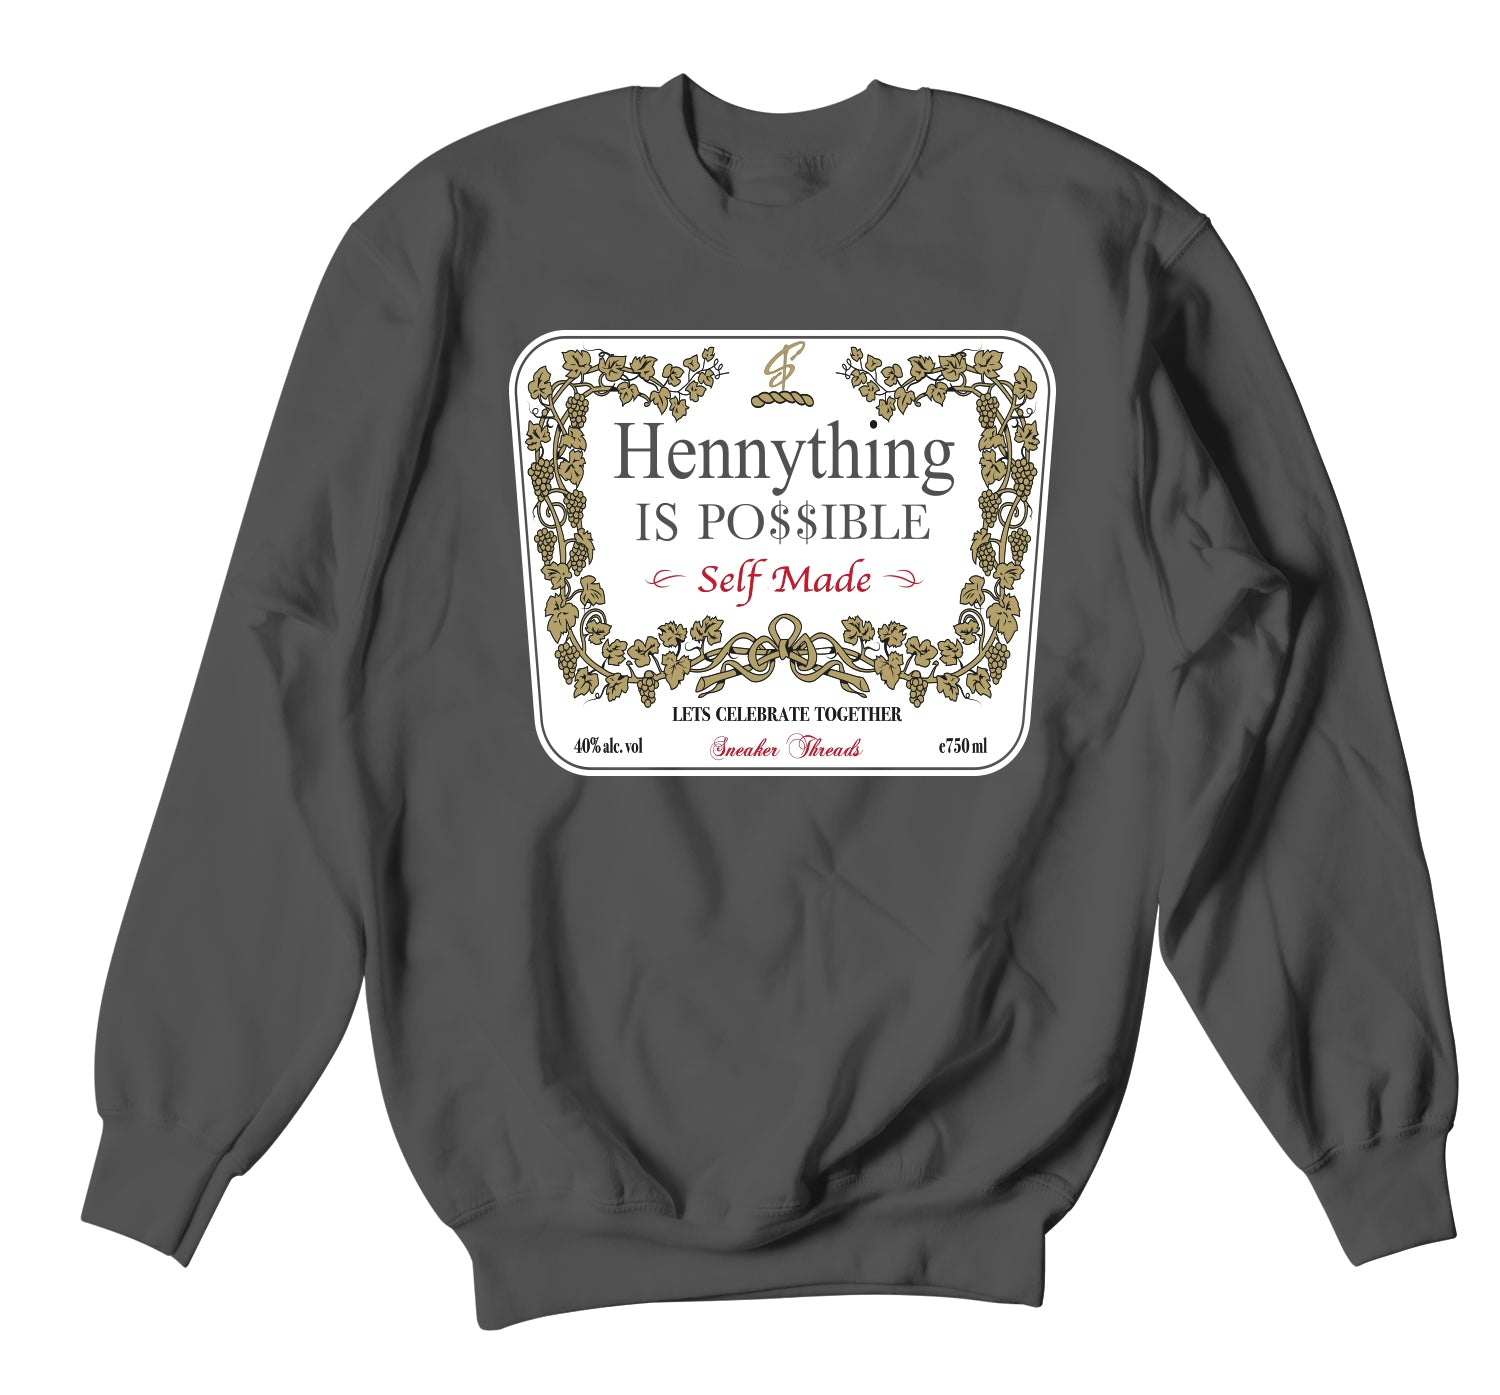 Jordan 12 Dark Grey Sweater  - Hennything - Charcoal